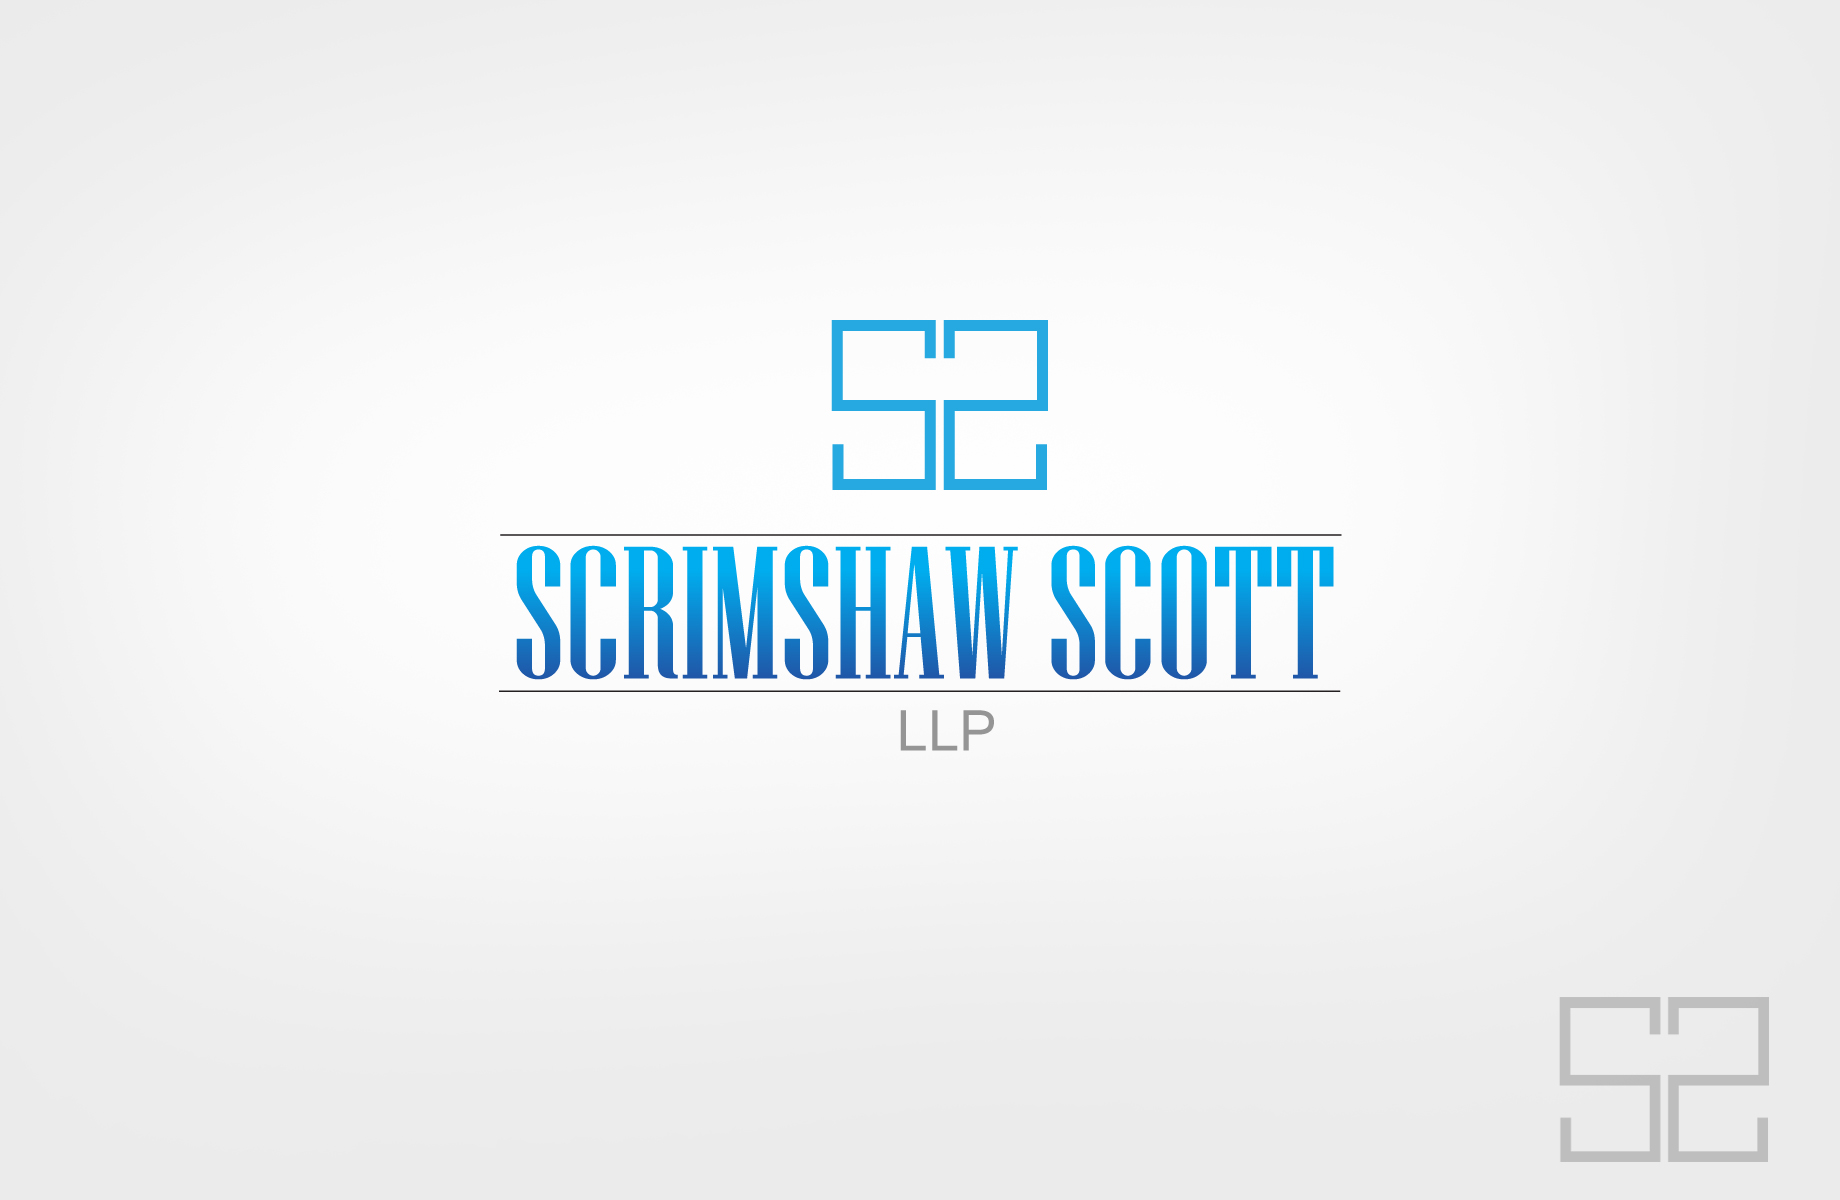 Logo Design by Jan Chua - Entry No. 29 in the Logo Design Contest Creative Logo Design for Scrimshaw Scott LLP.